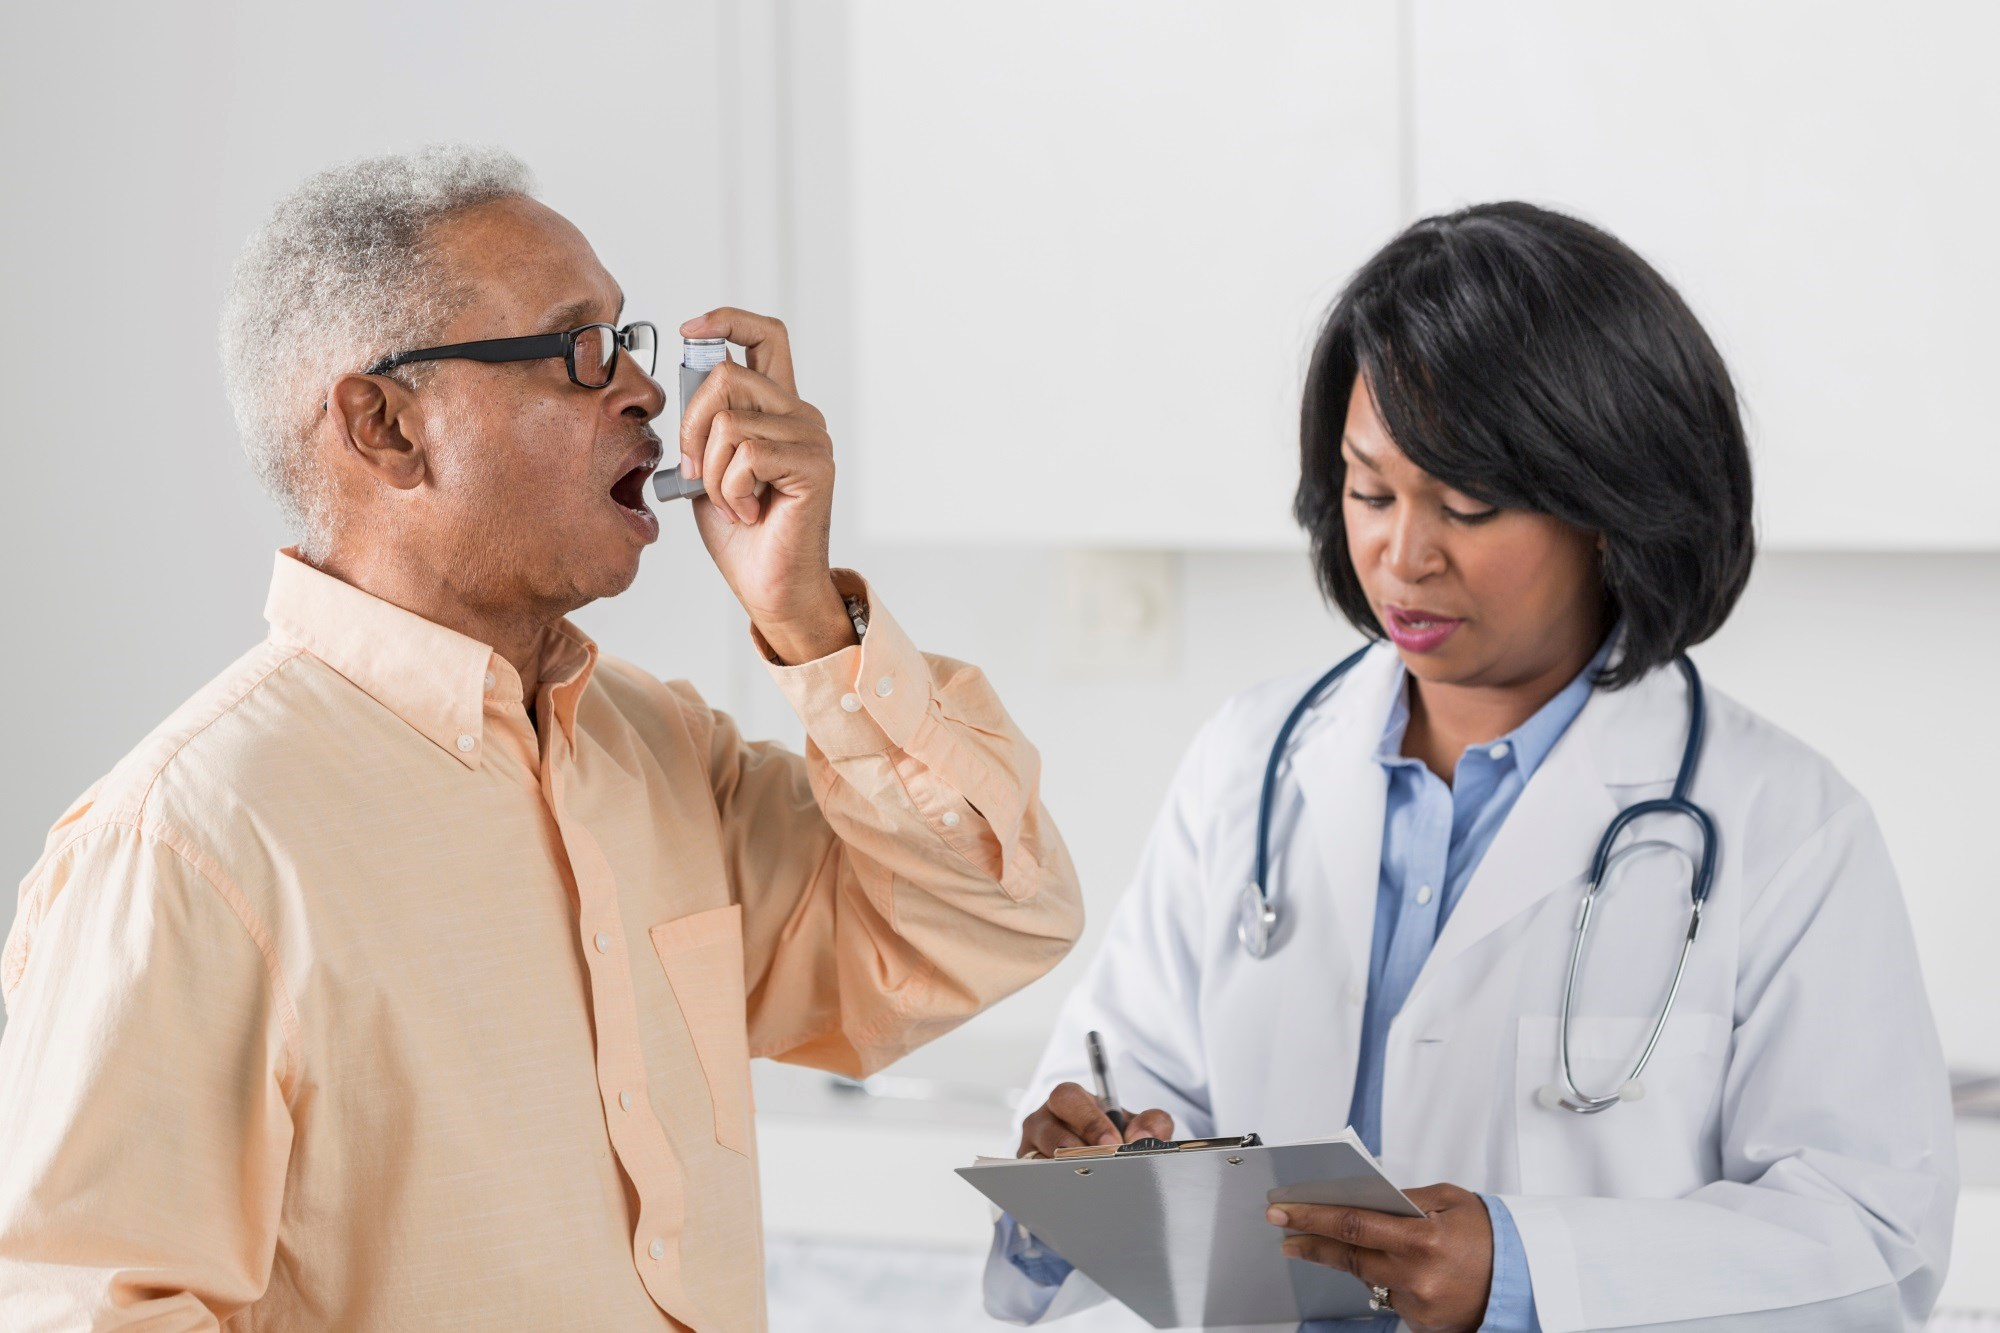 Symptom Free Days Questionnaire Lacks Reliability in Black Asthma Patients